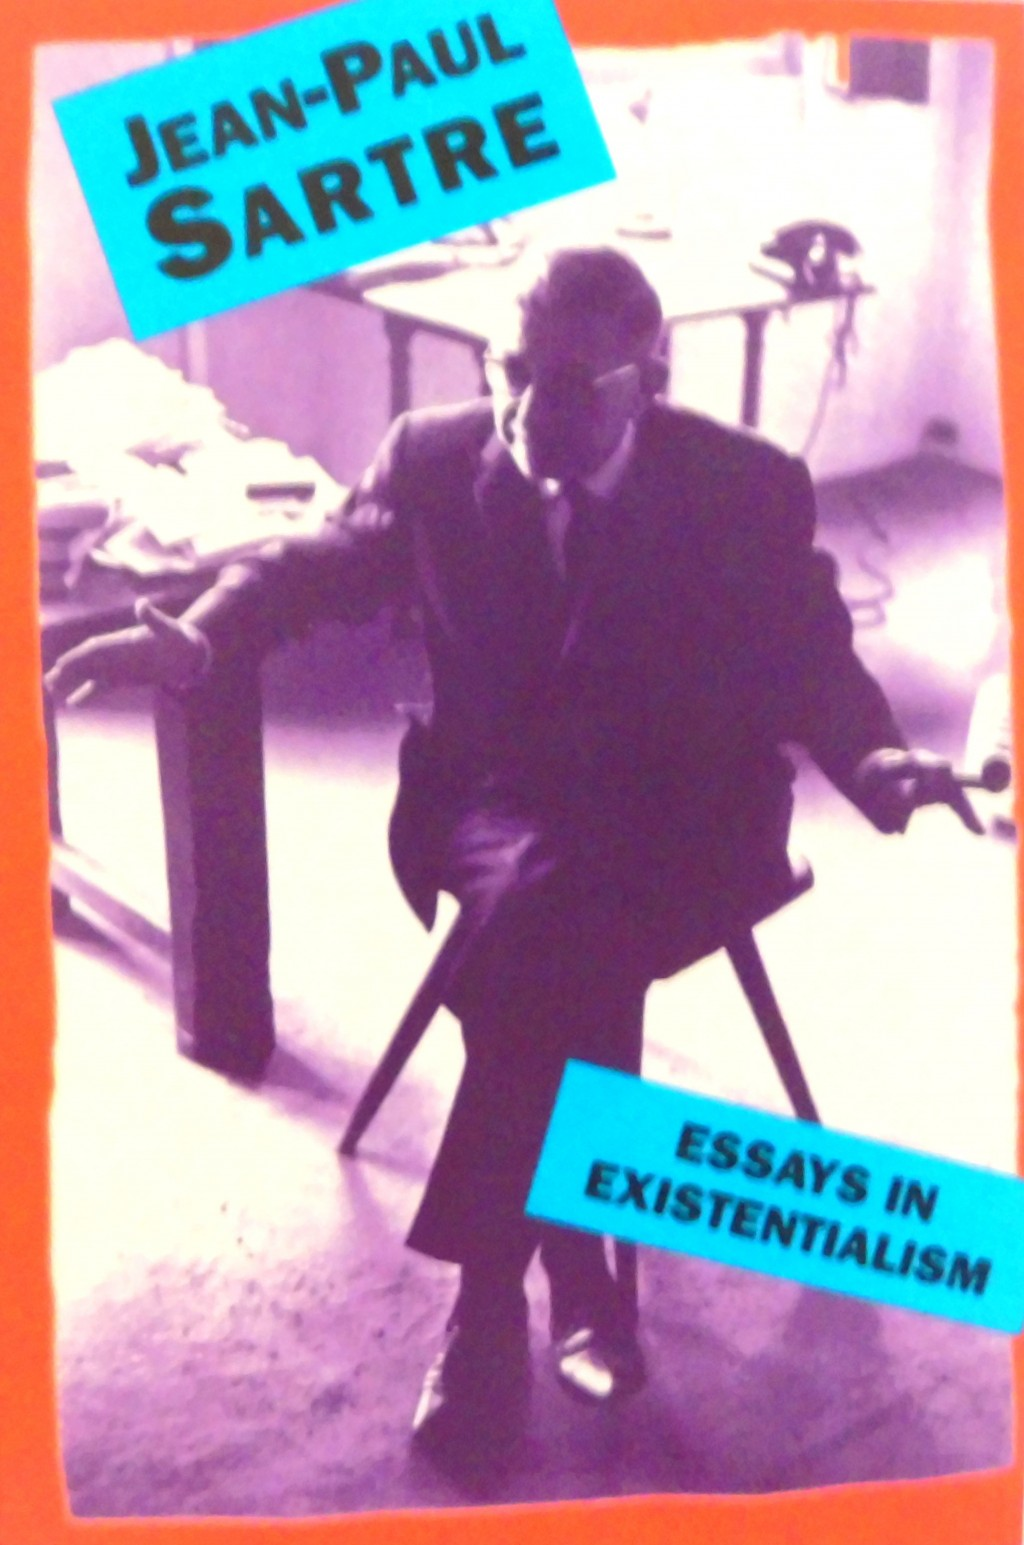 007 X Essay Example Essays In Outstanding Existentialism Sartre Pdf Jean Paul Large